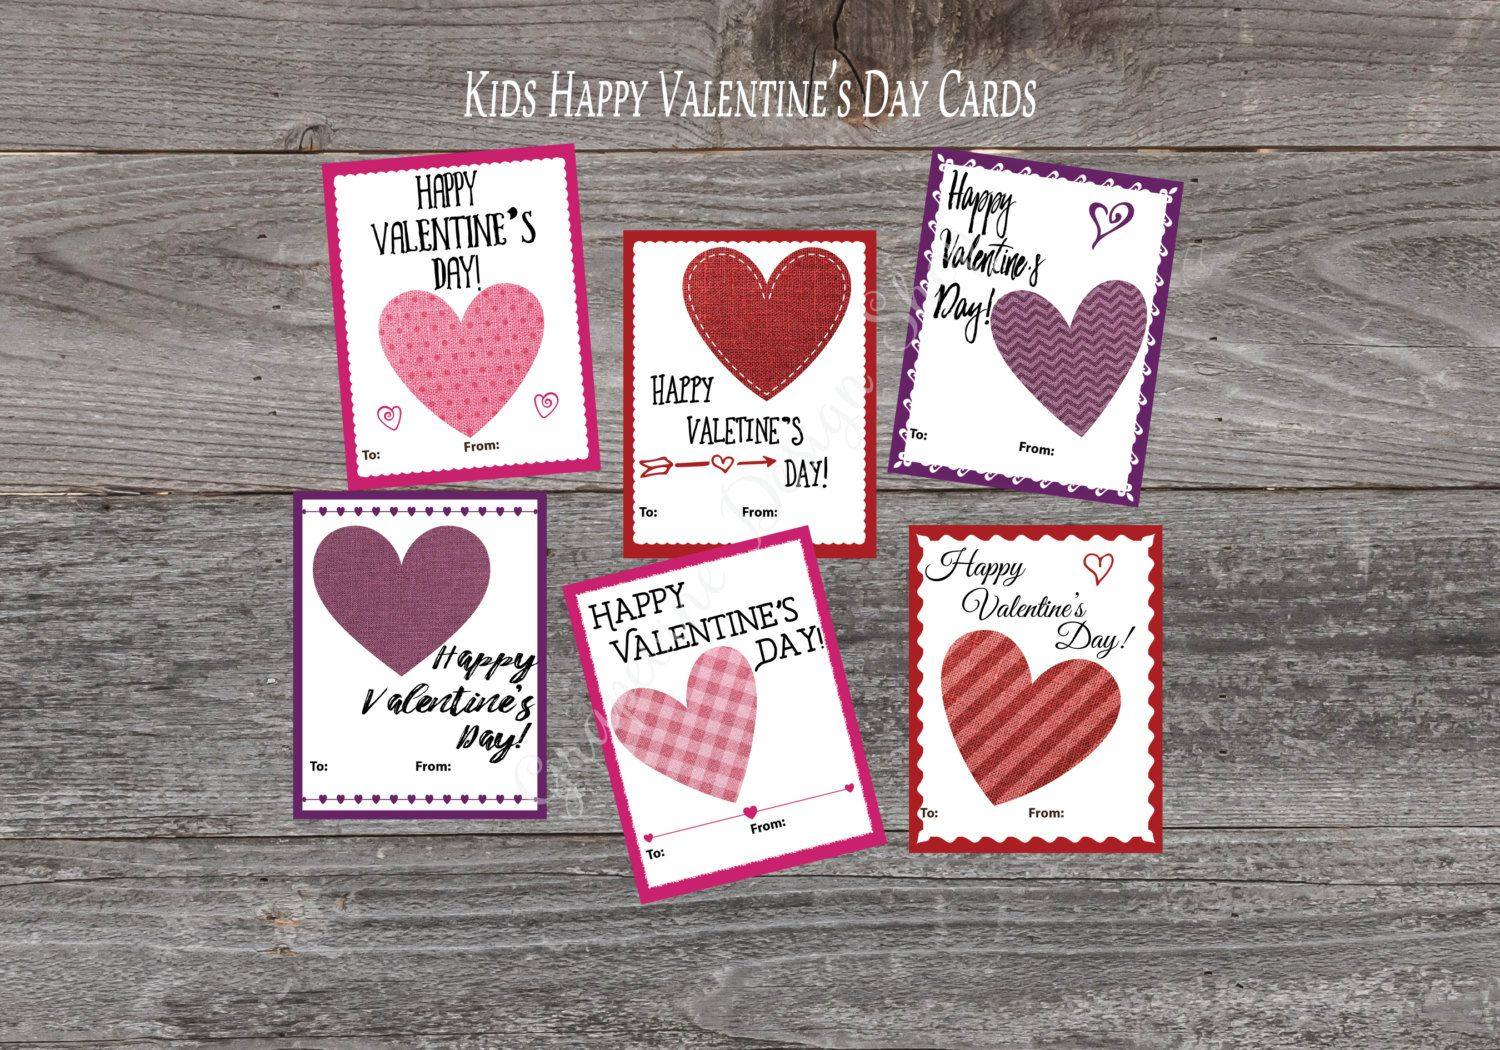 Valentine Cards For Kids Classroom Valentine Printable Etsy Valentines Cards School Valentine Cards Valentine Day Cards